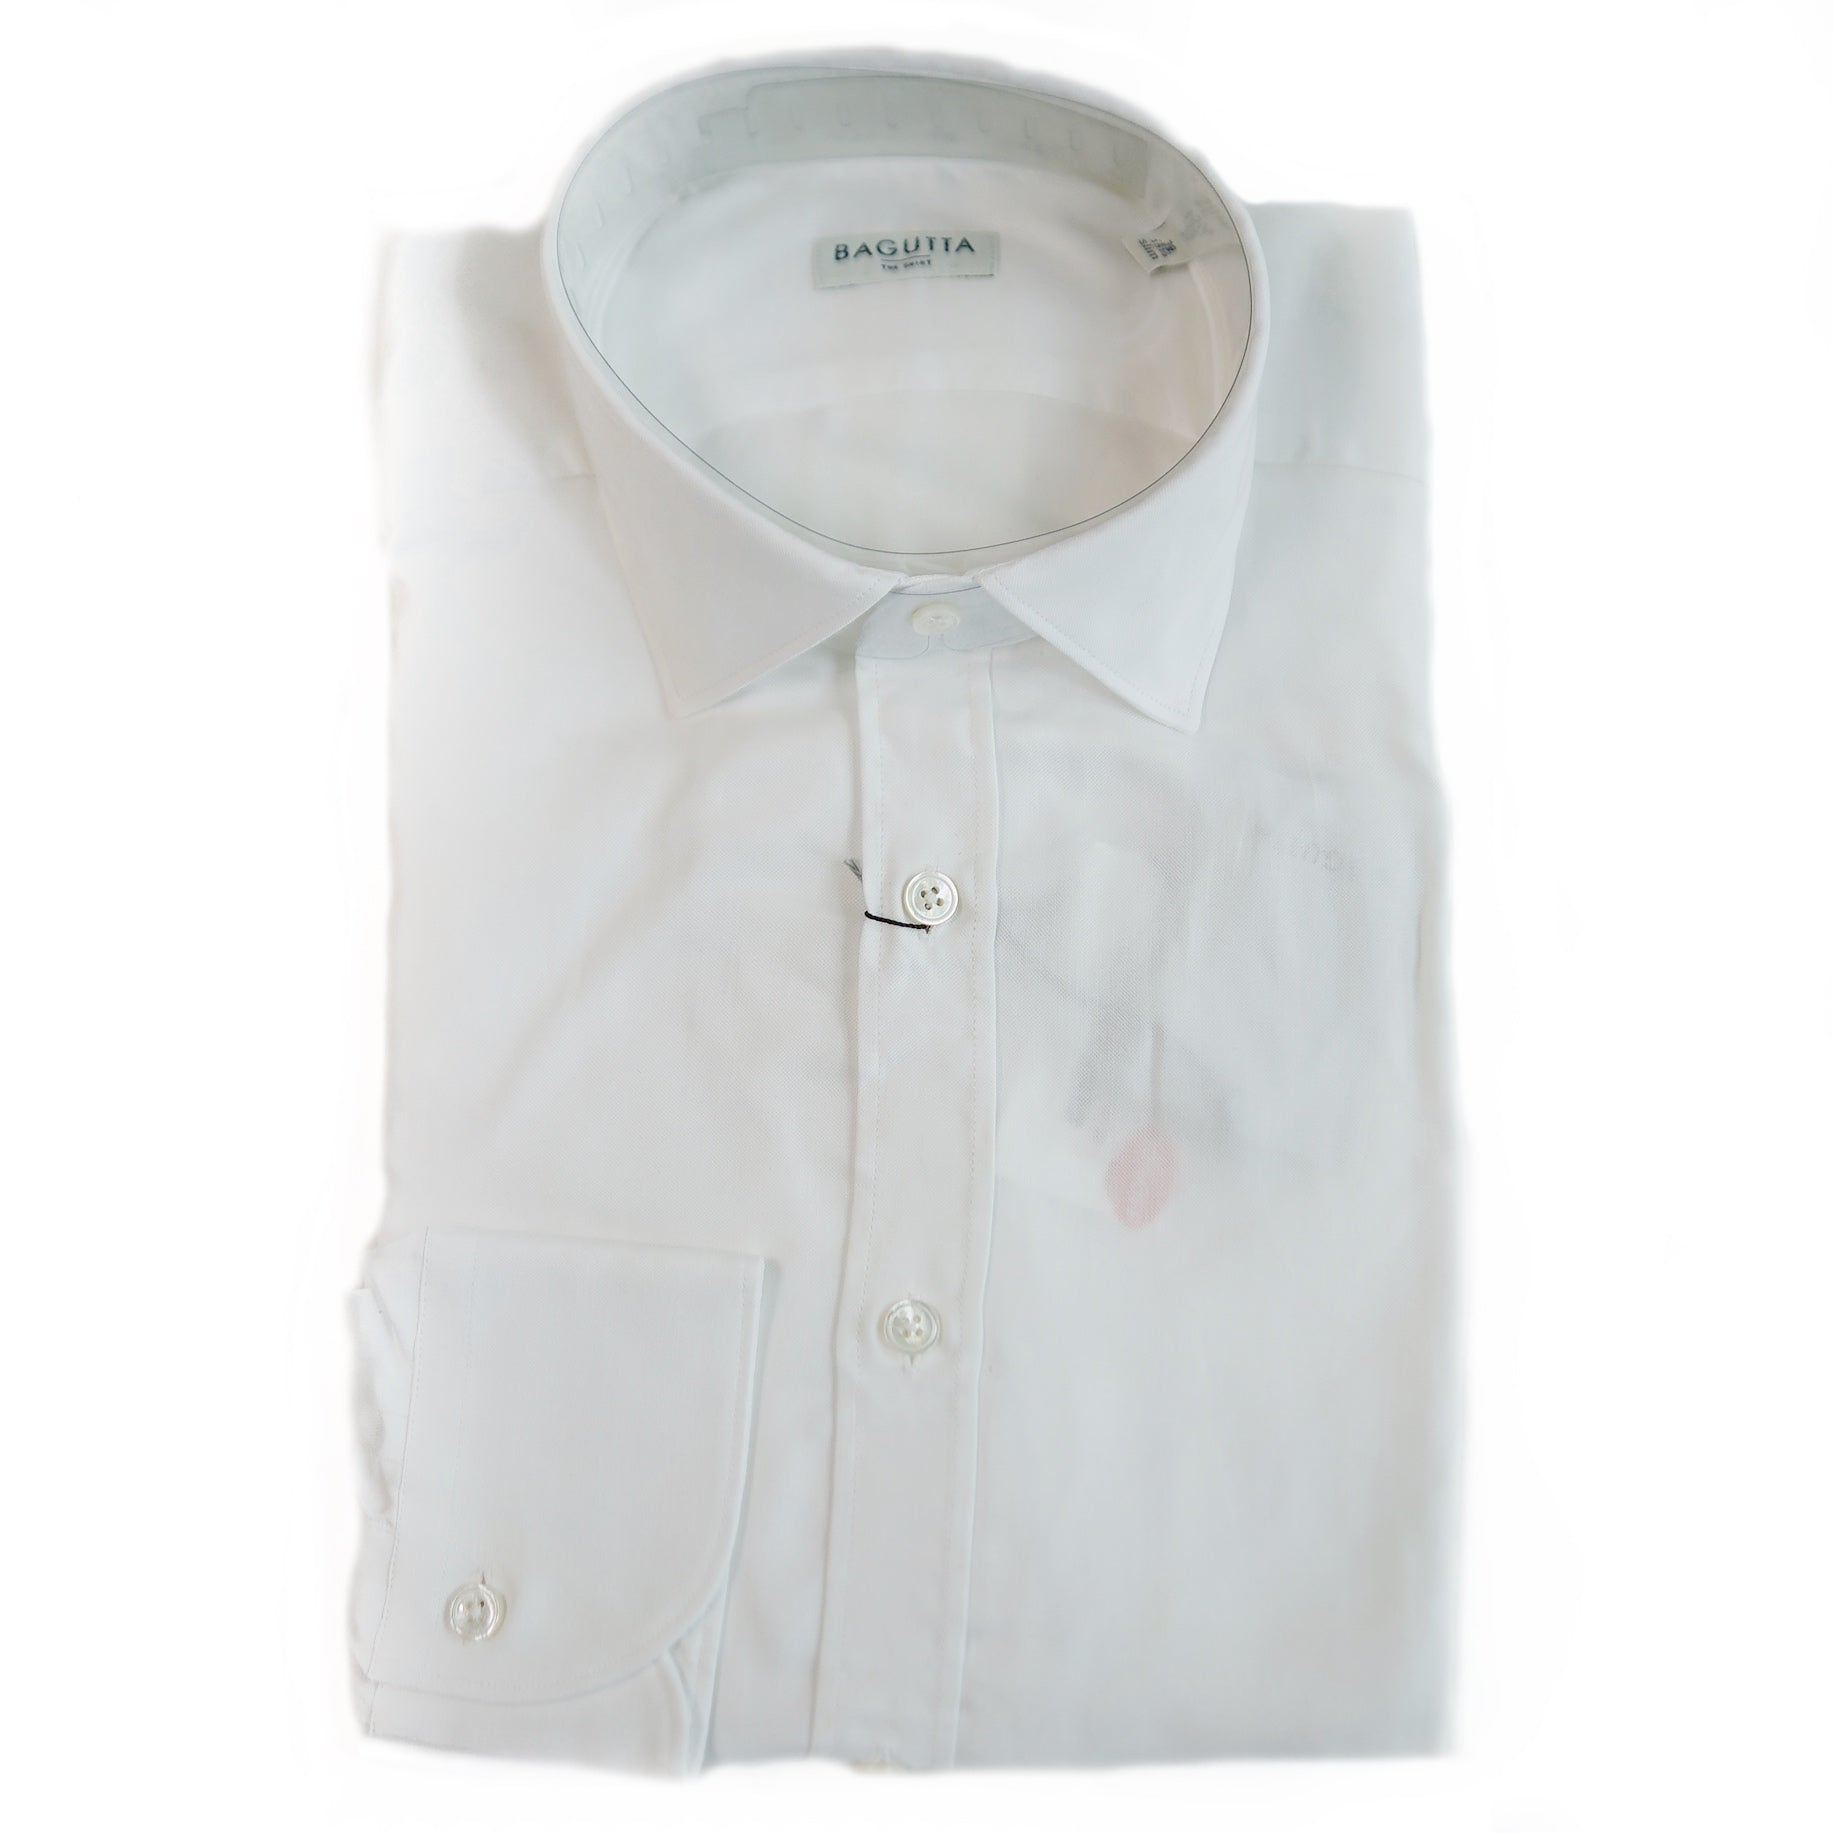 Bagutta White Bberlinok Dress Shirt